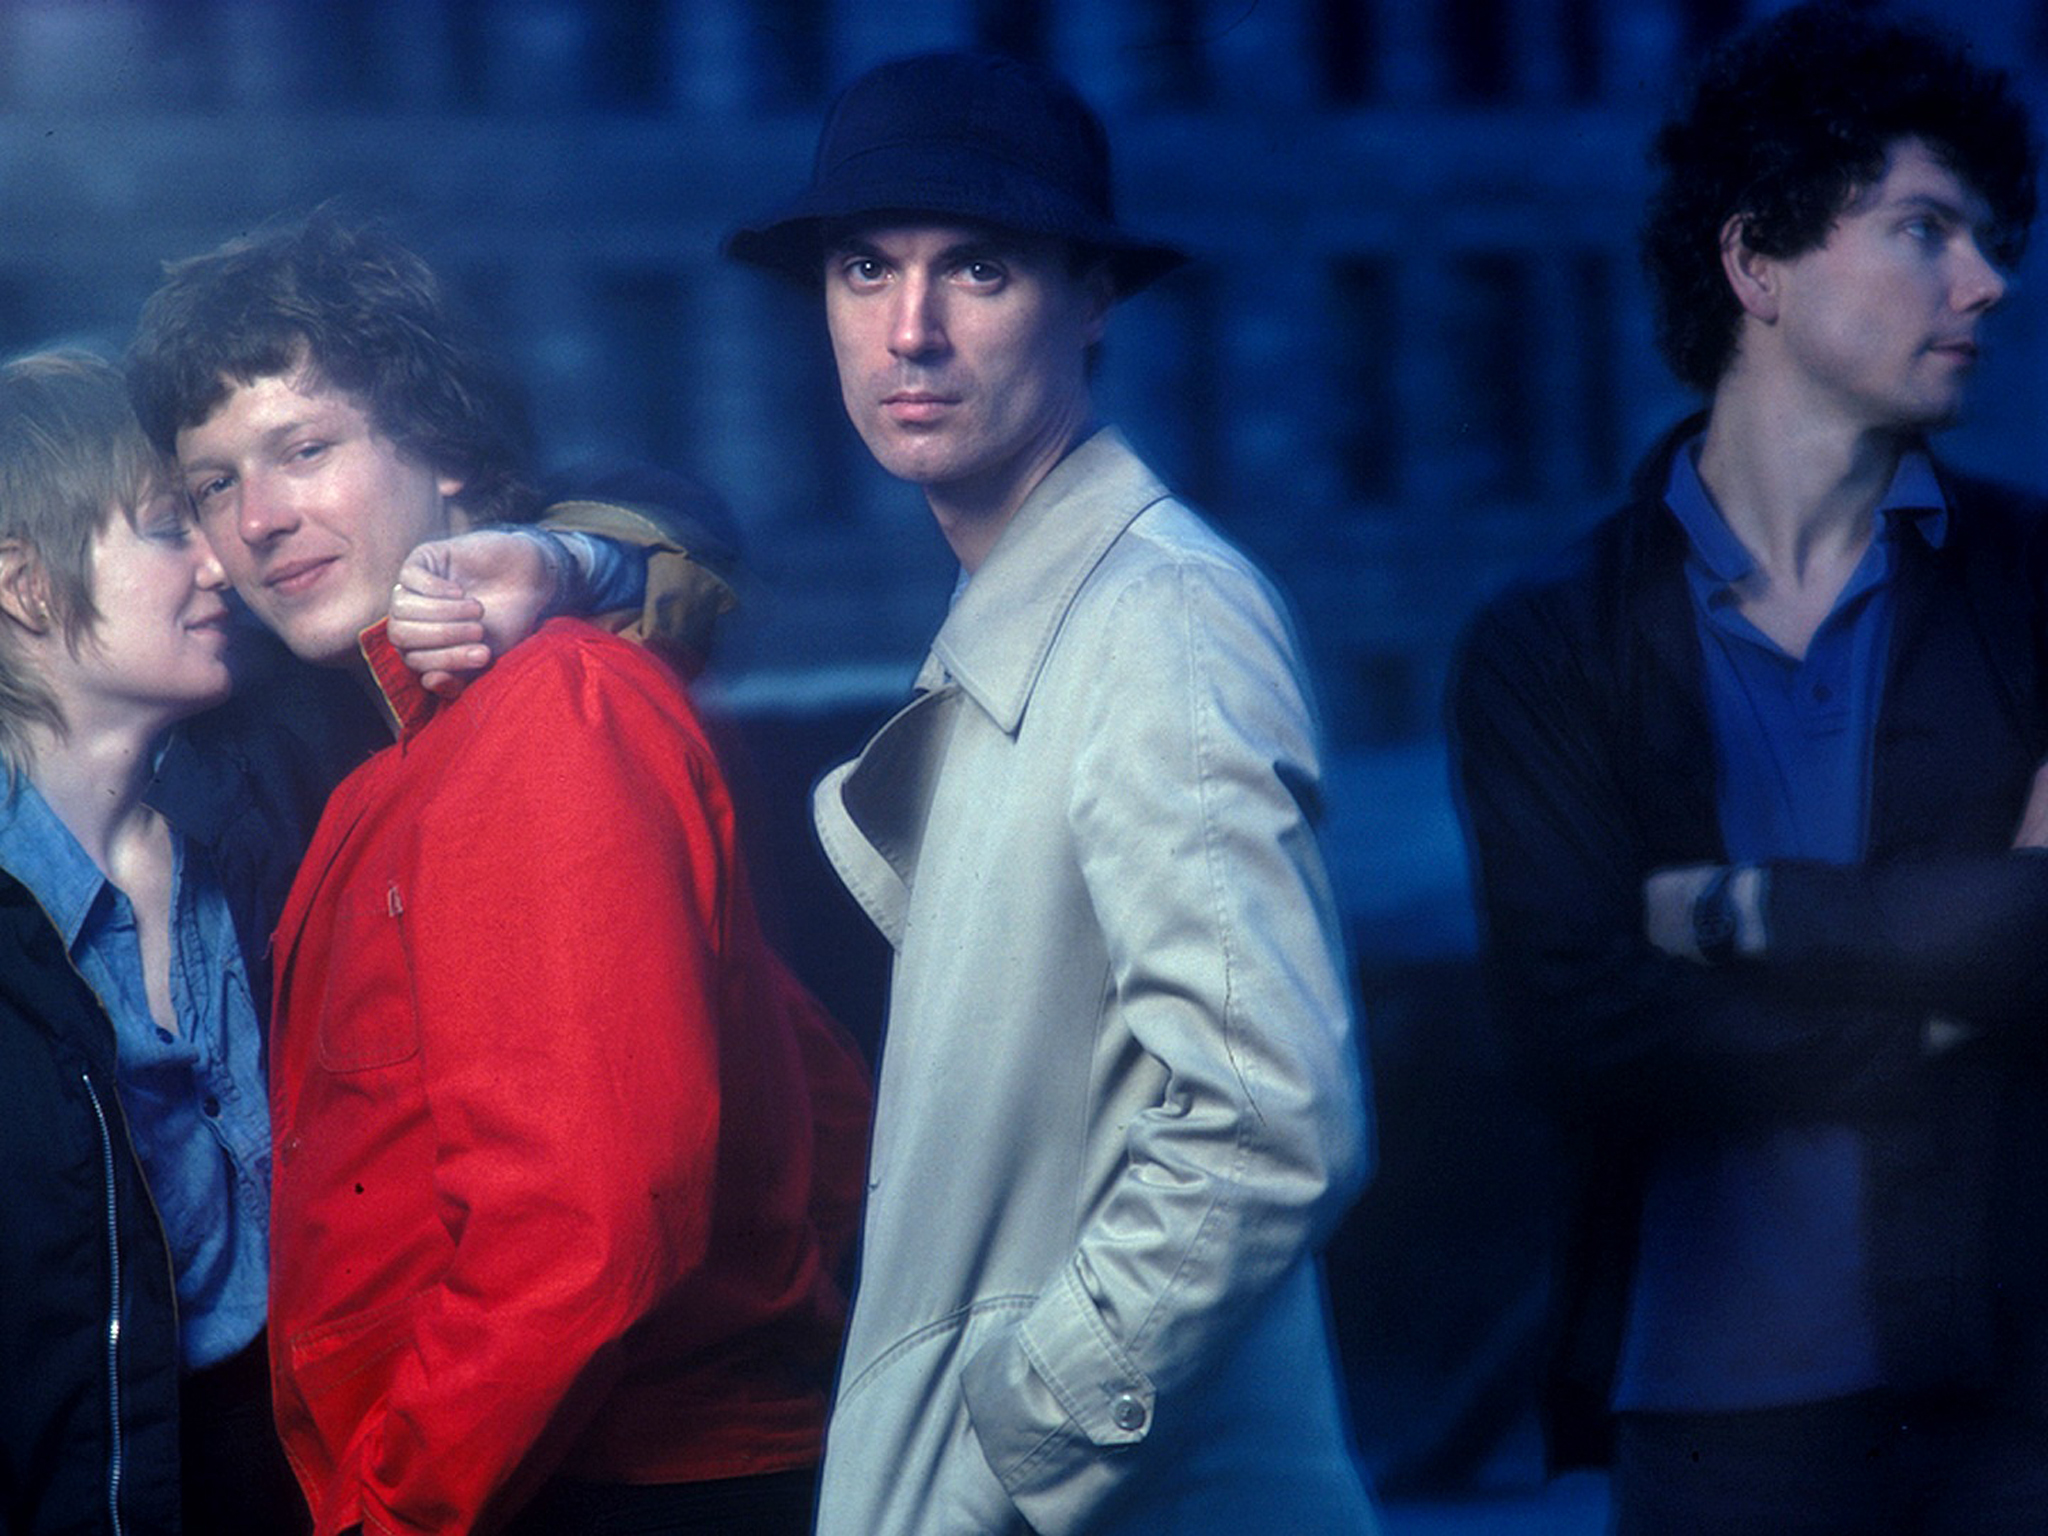 'Once in a Lifetime' – Talking Heads